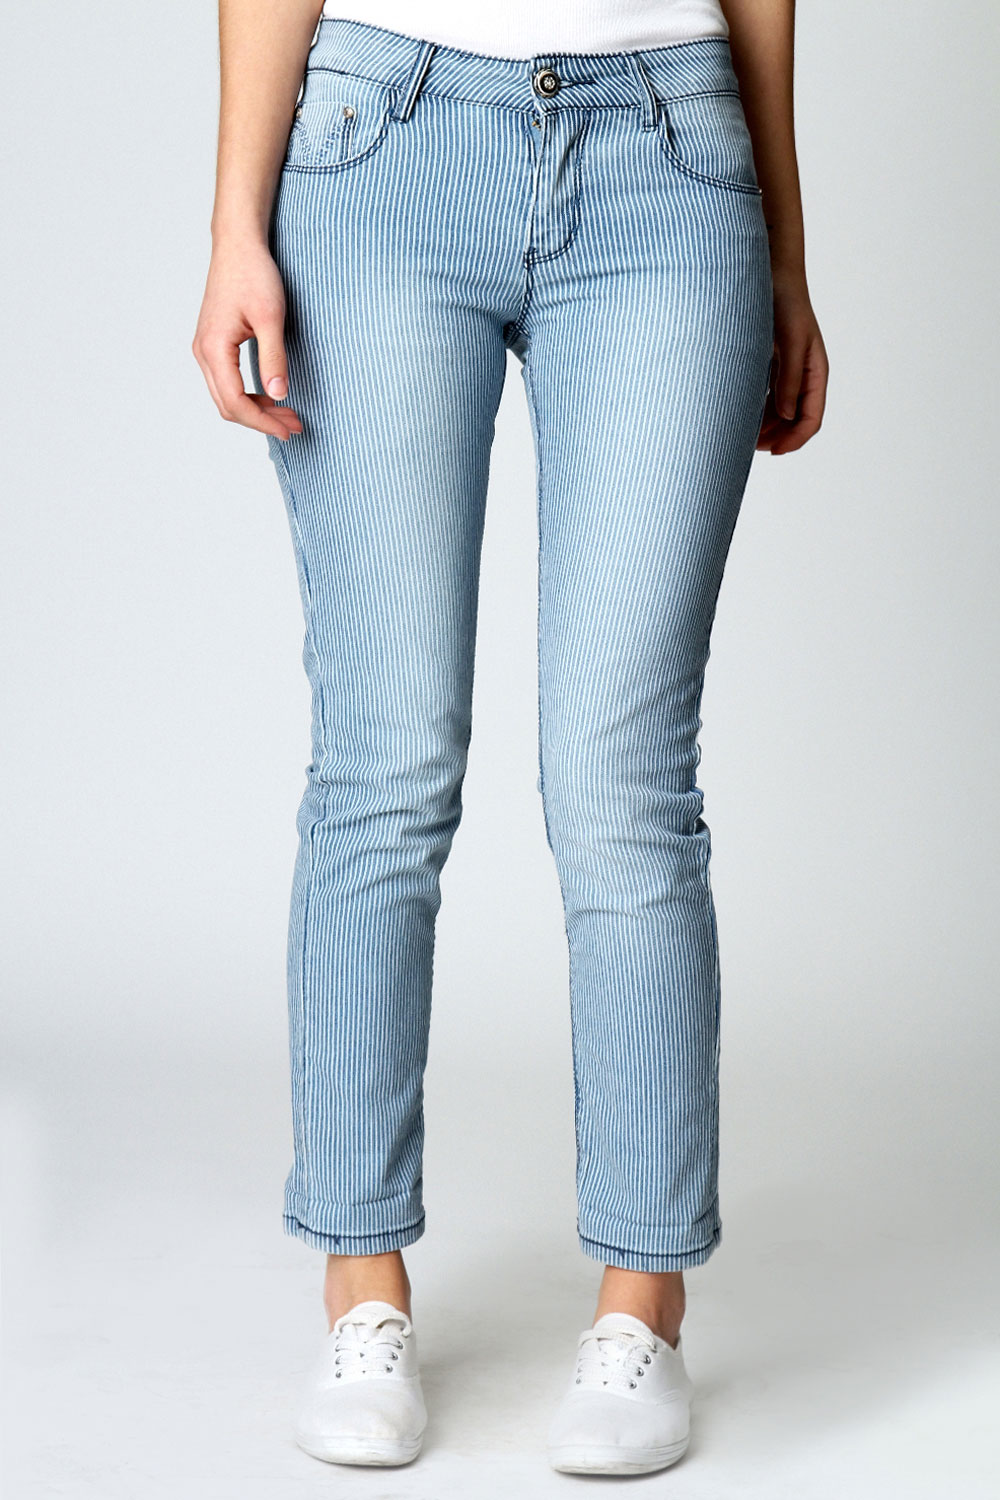 Boohoo-Katie-Cropped-Striped-Skinny-Jeans-in-Blue-White